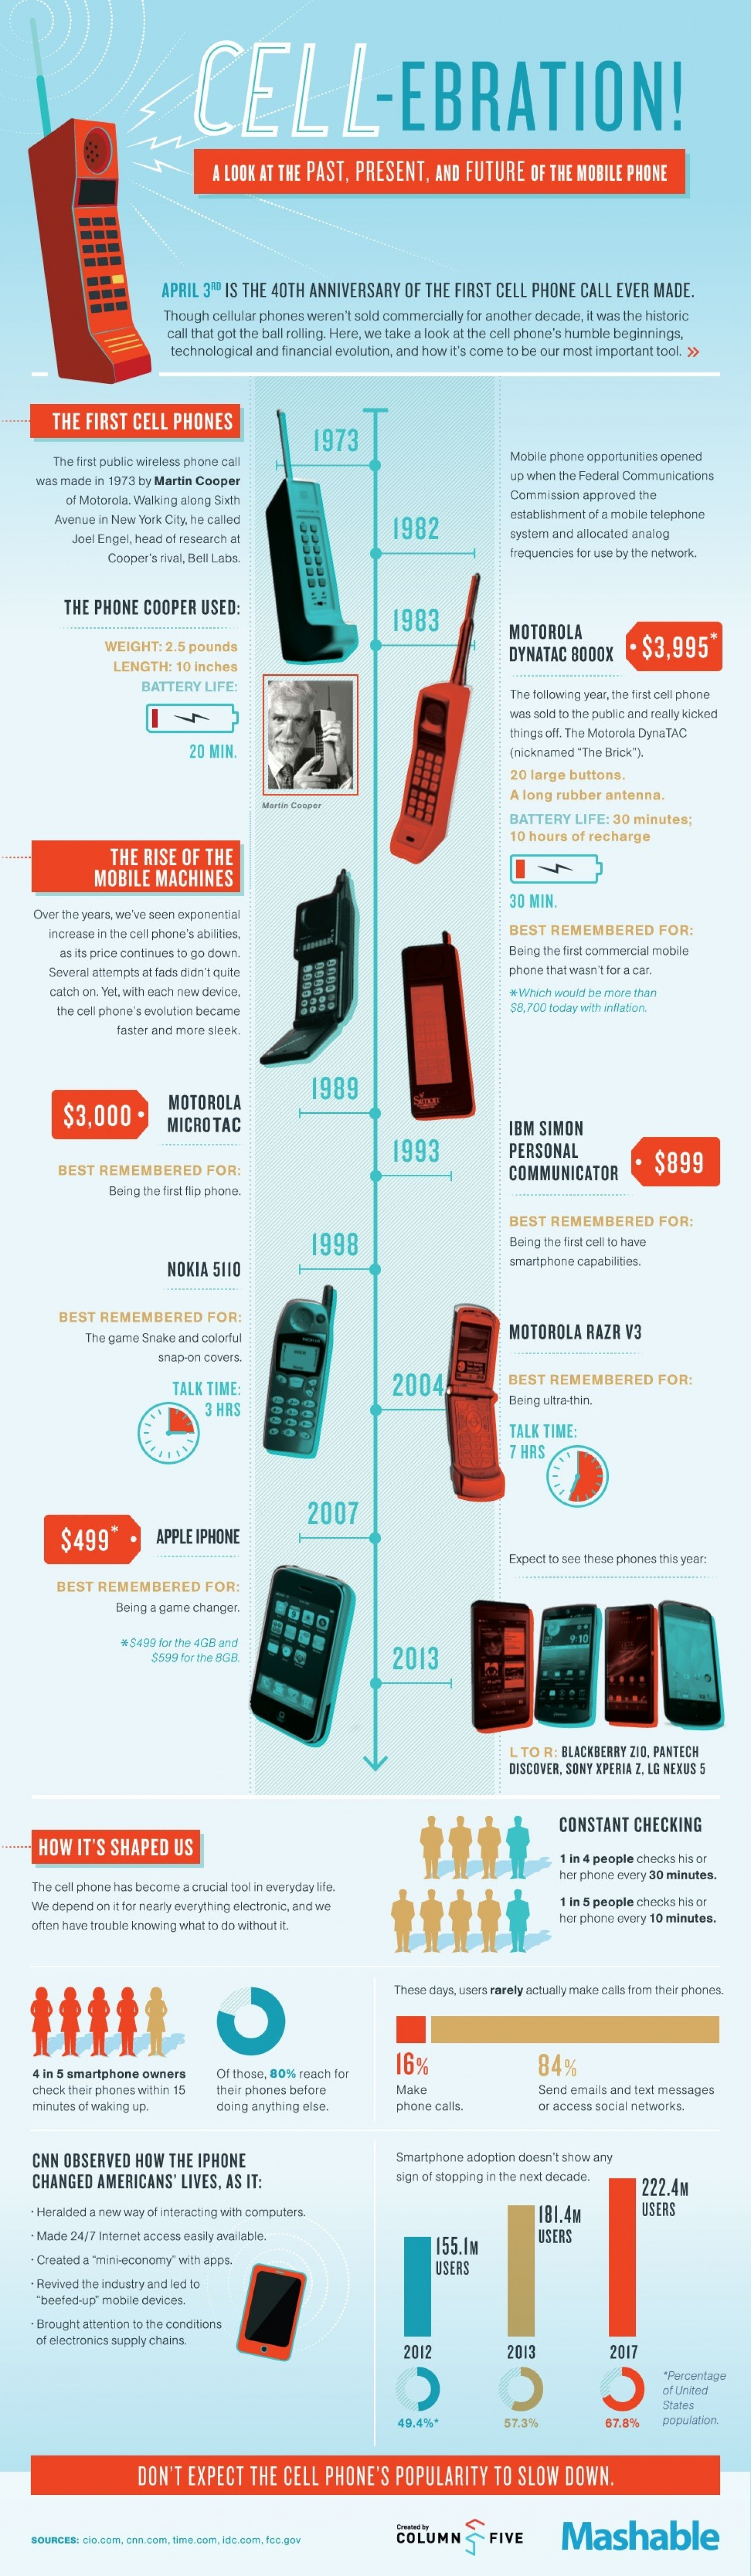 Cell-ebration! 40 Years of Cellphone History Infographic